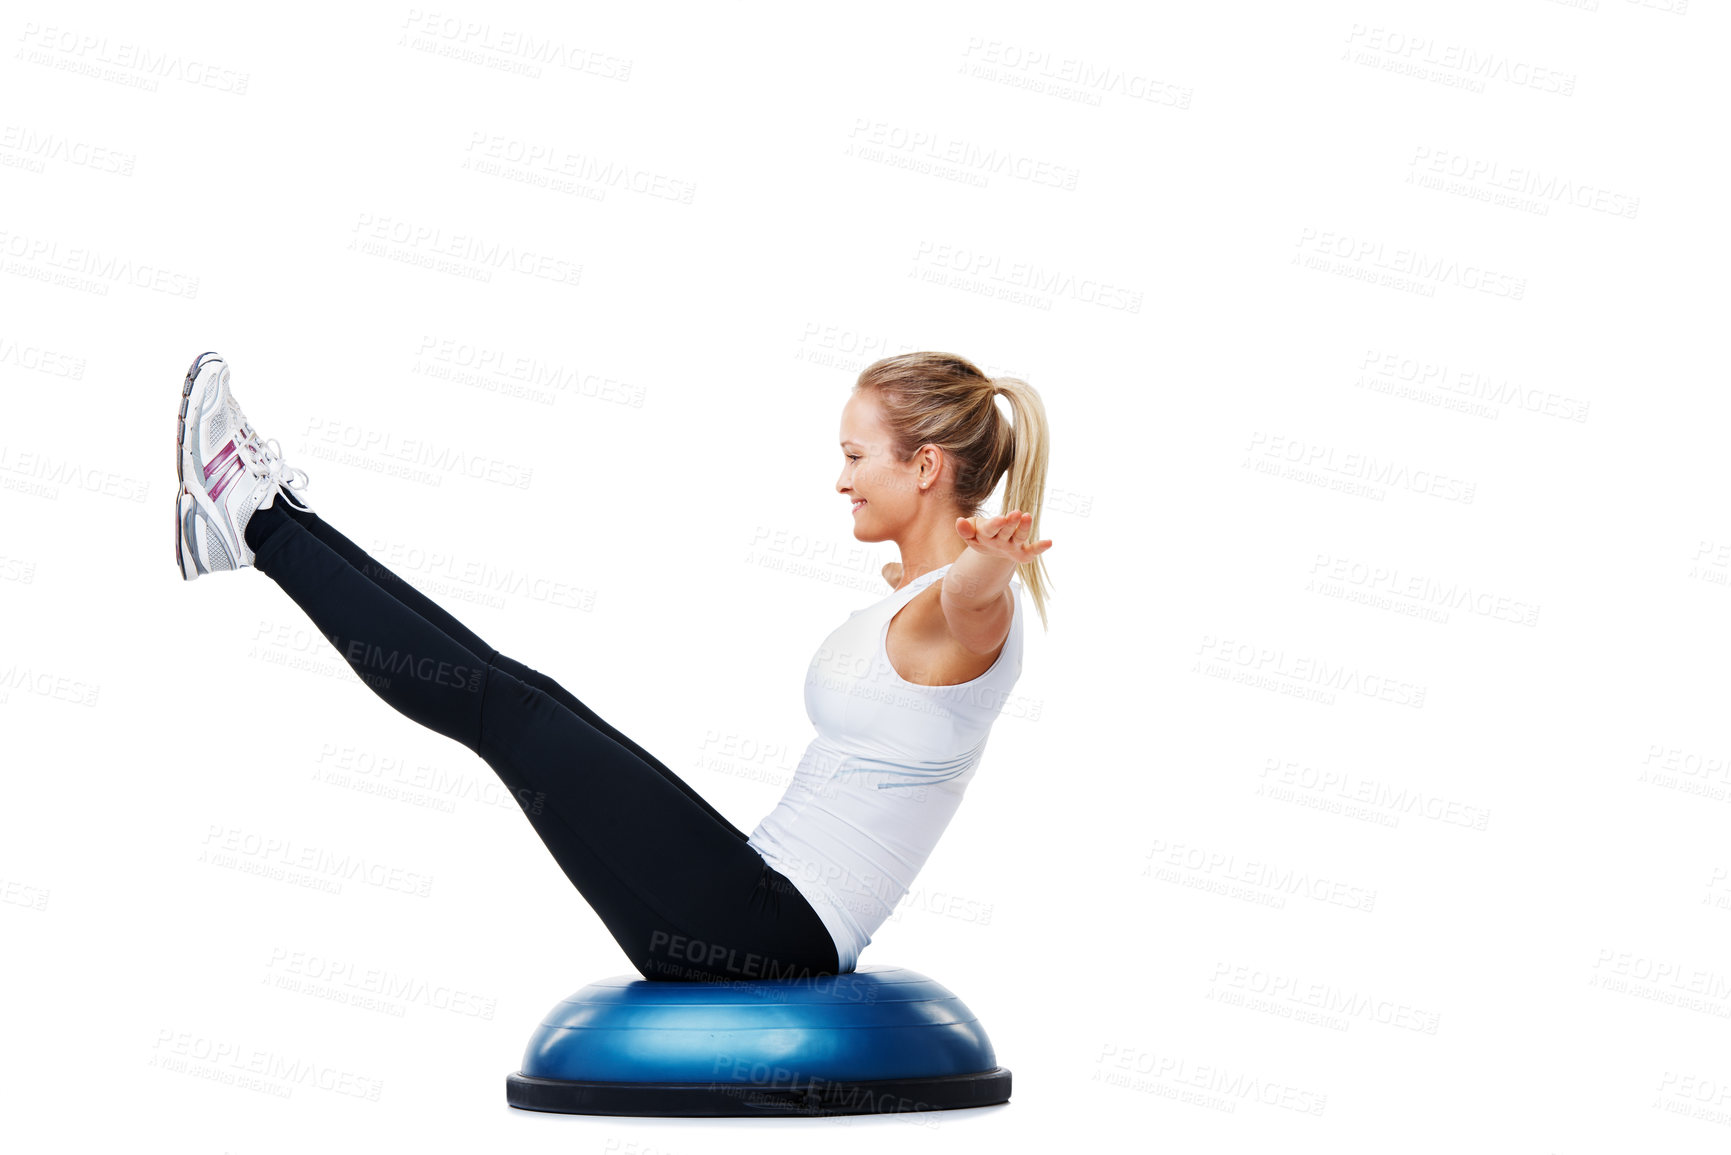 Buy stock photo A young woman balancing on a bosu-ball